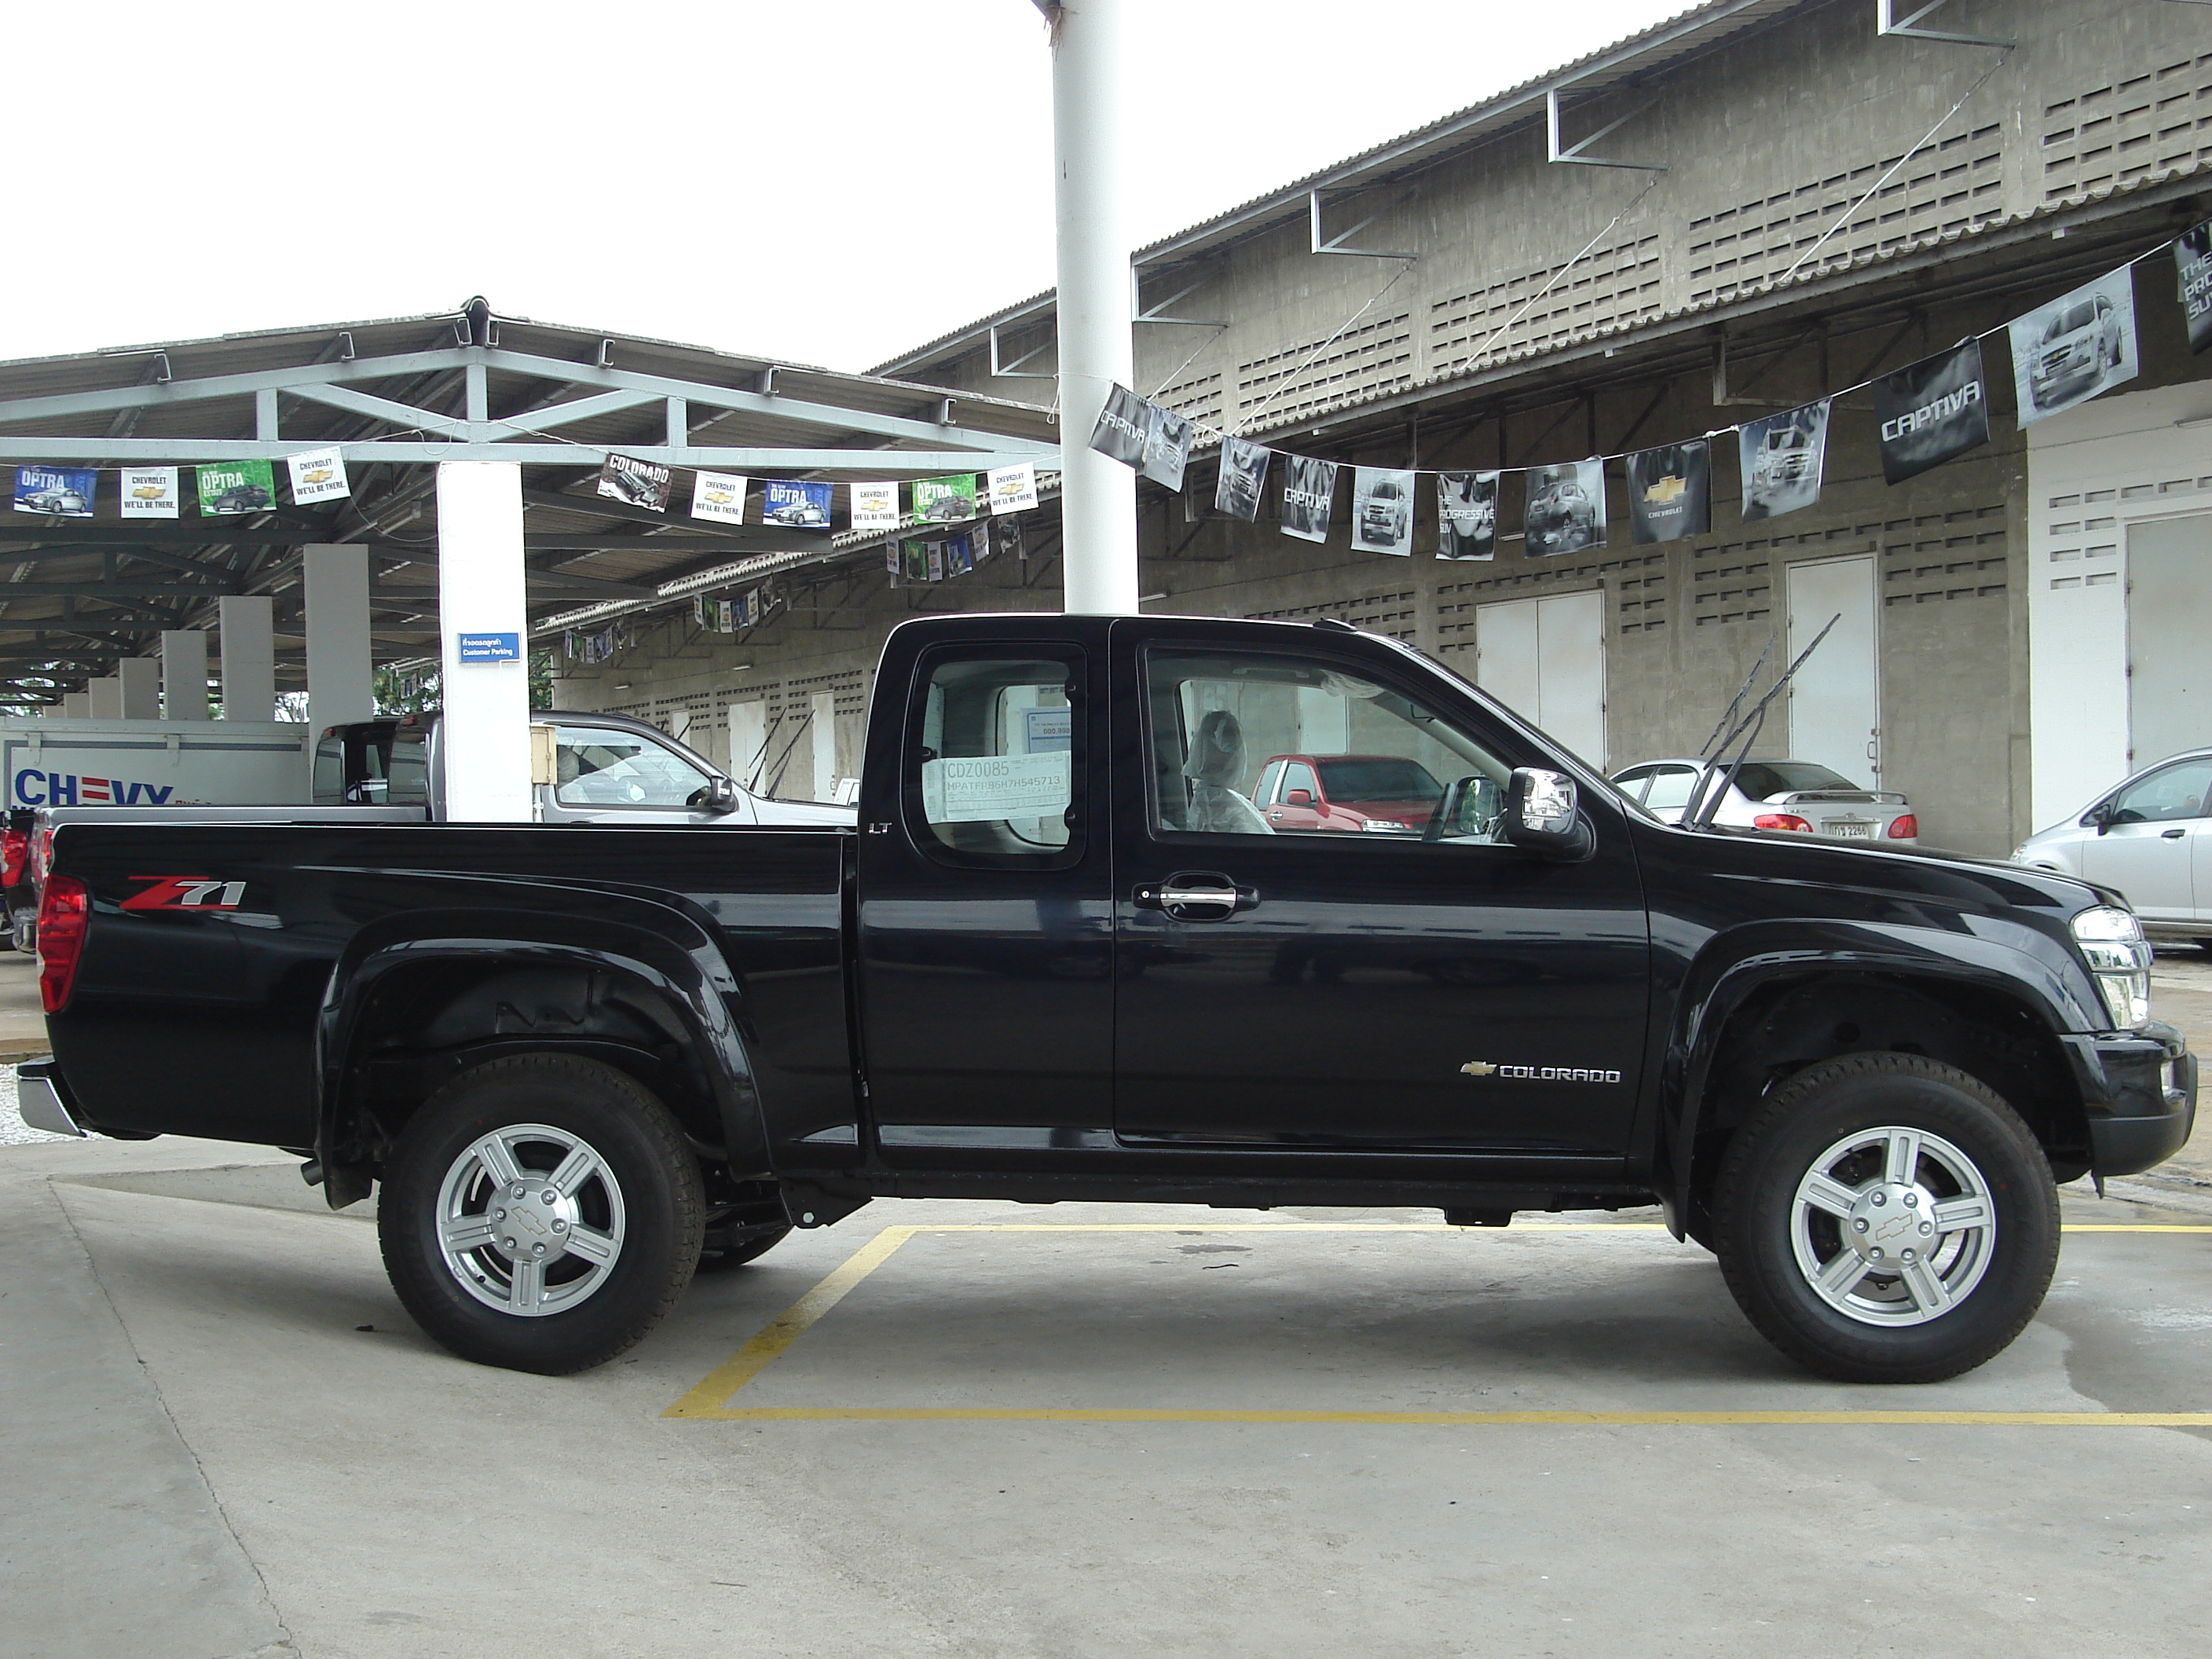 Chevrolet Colorado 2007 #5